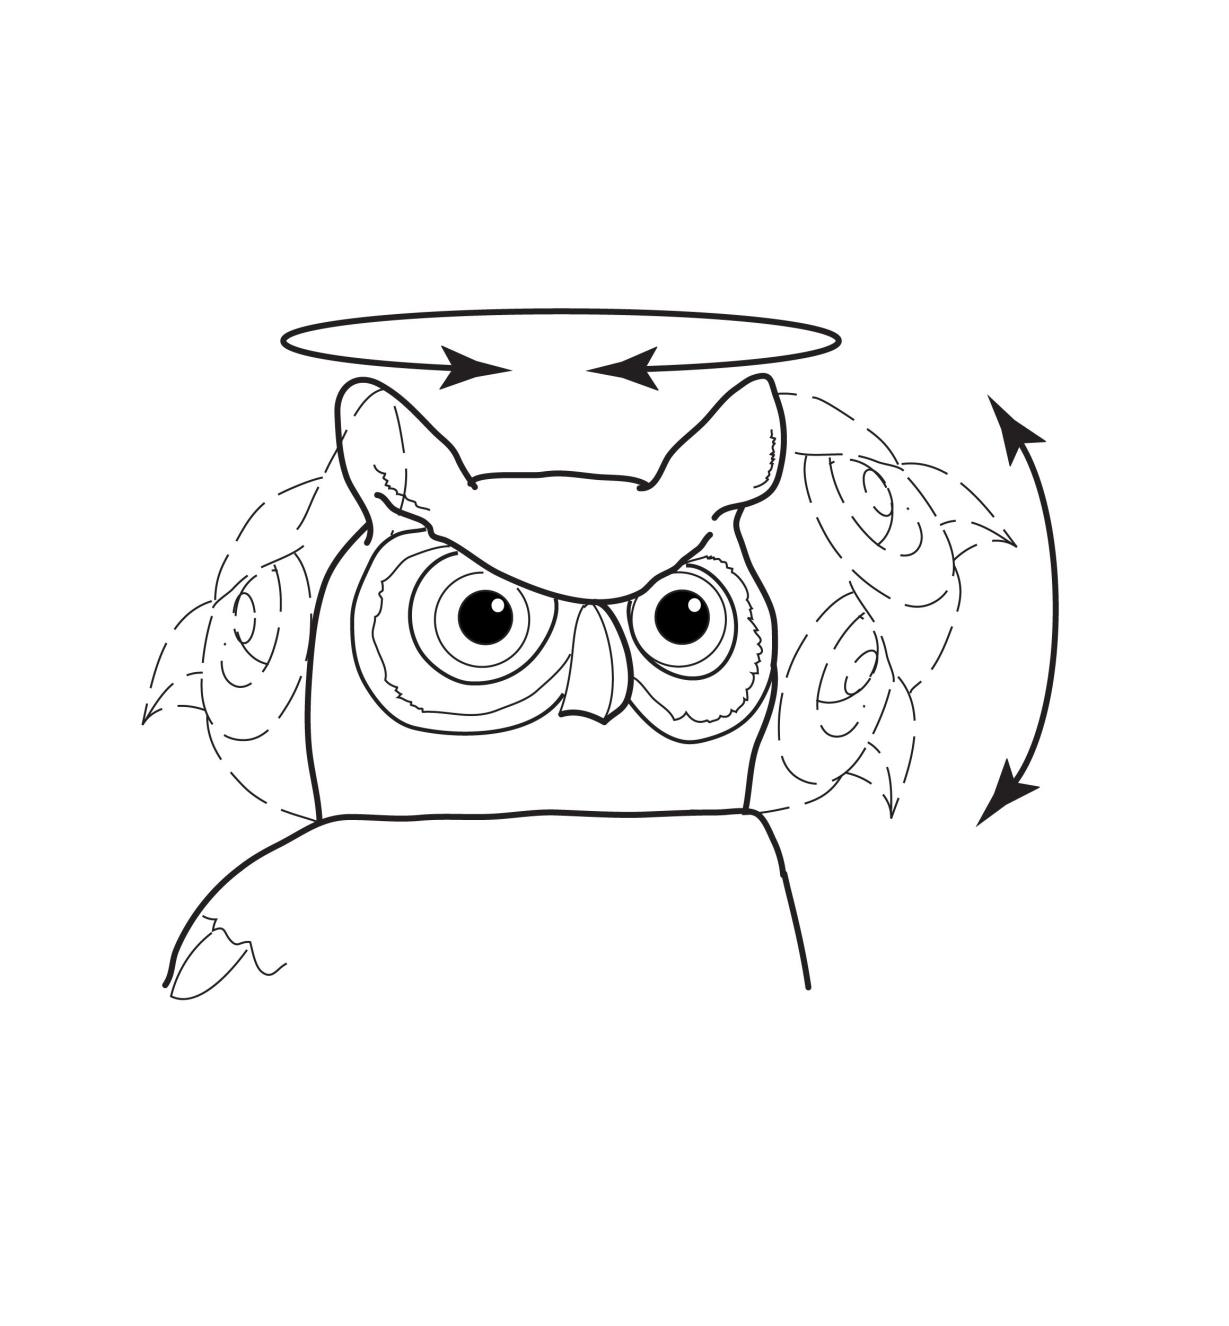 Illustration shows how the owl's head nods and turns